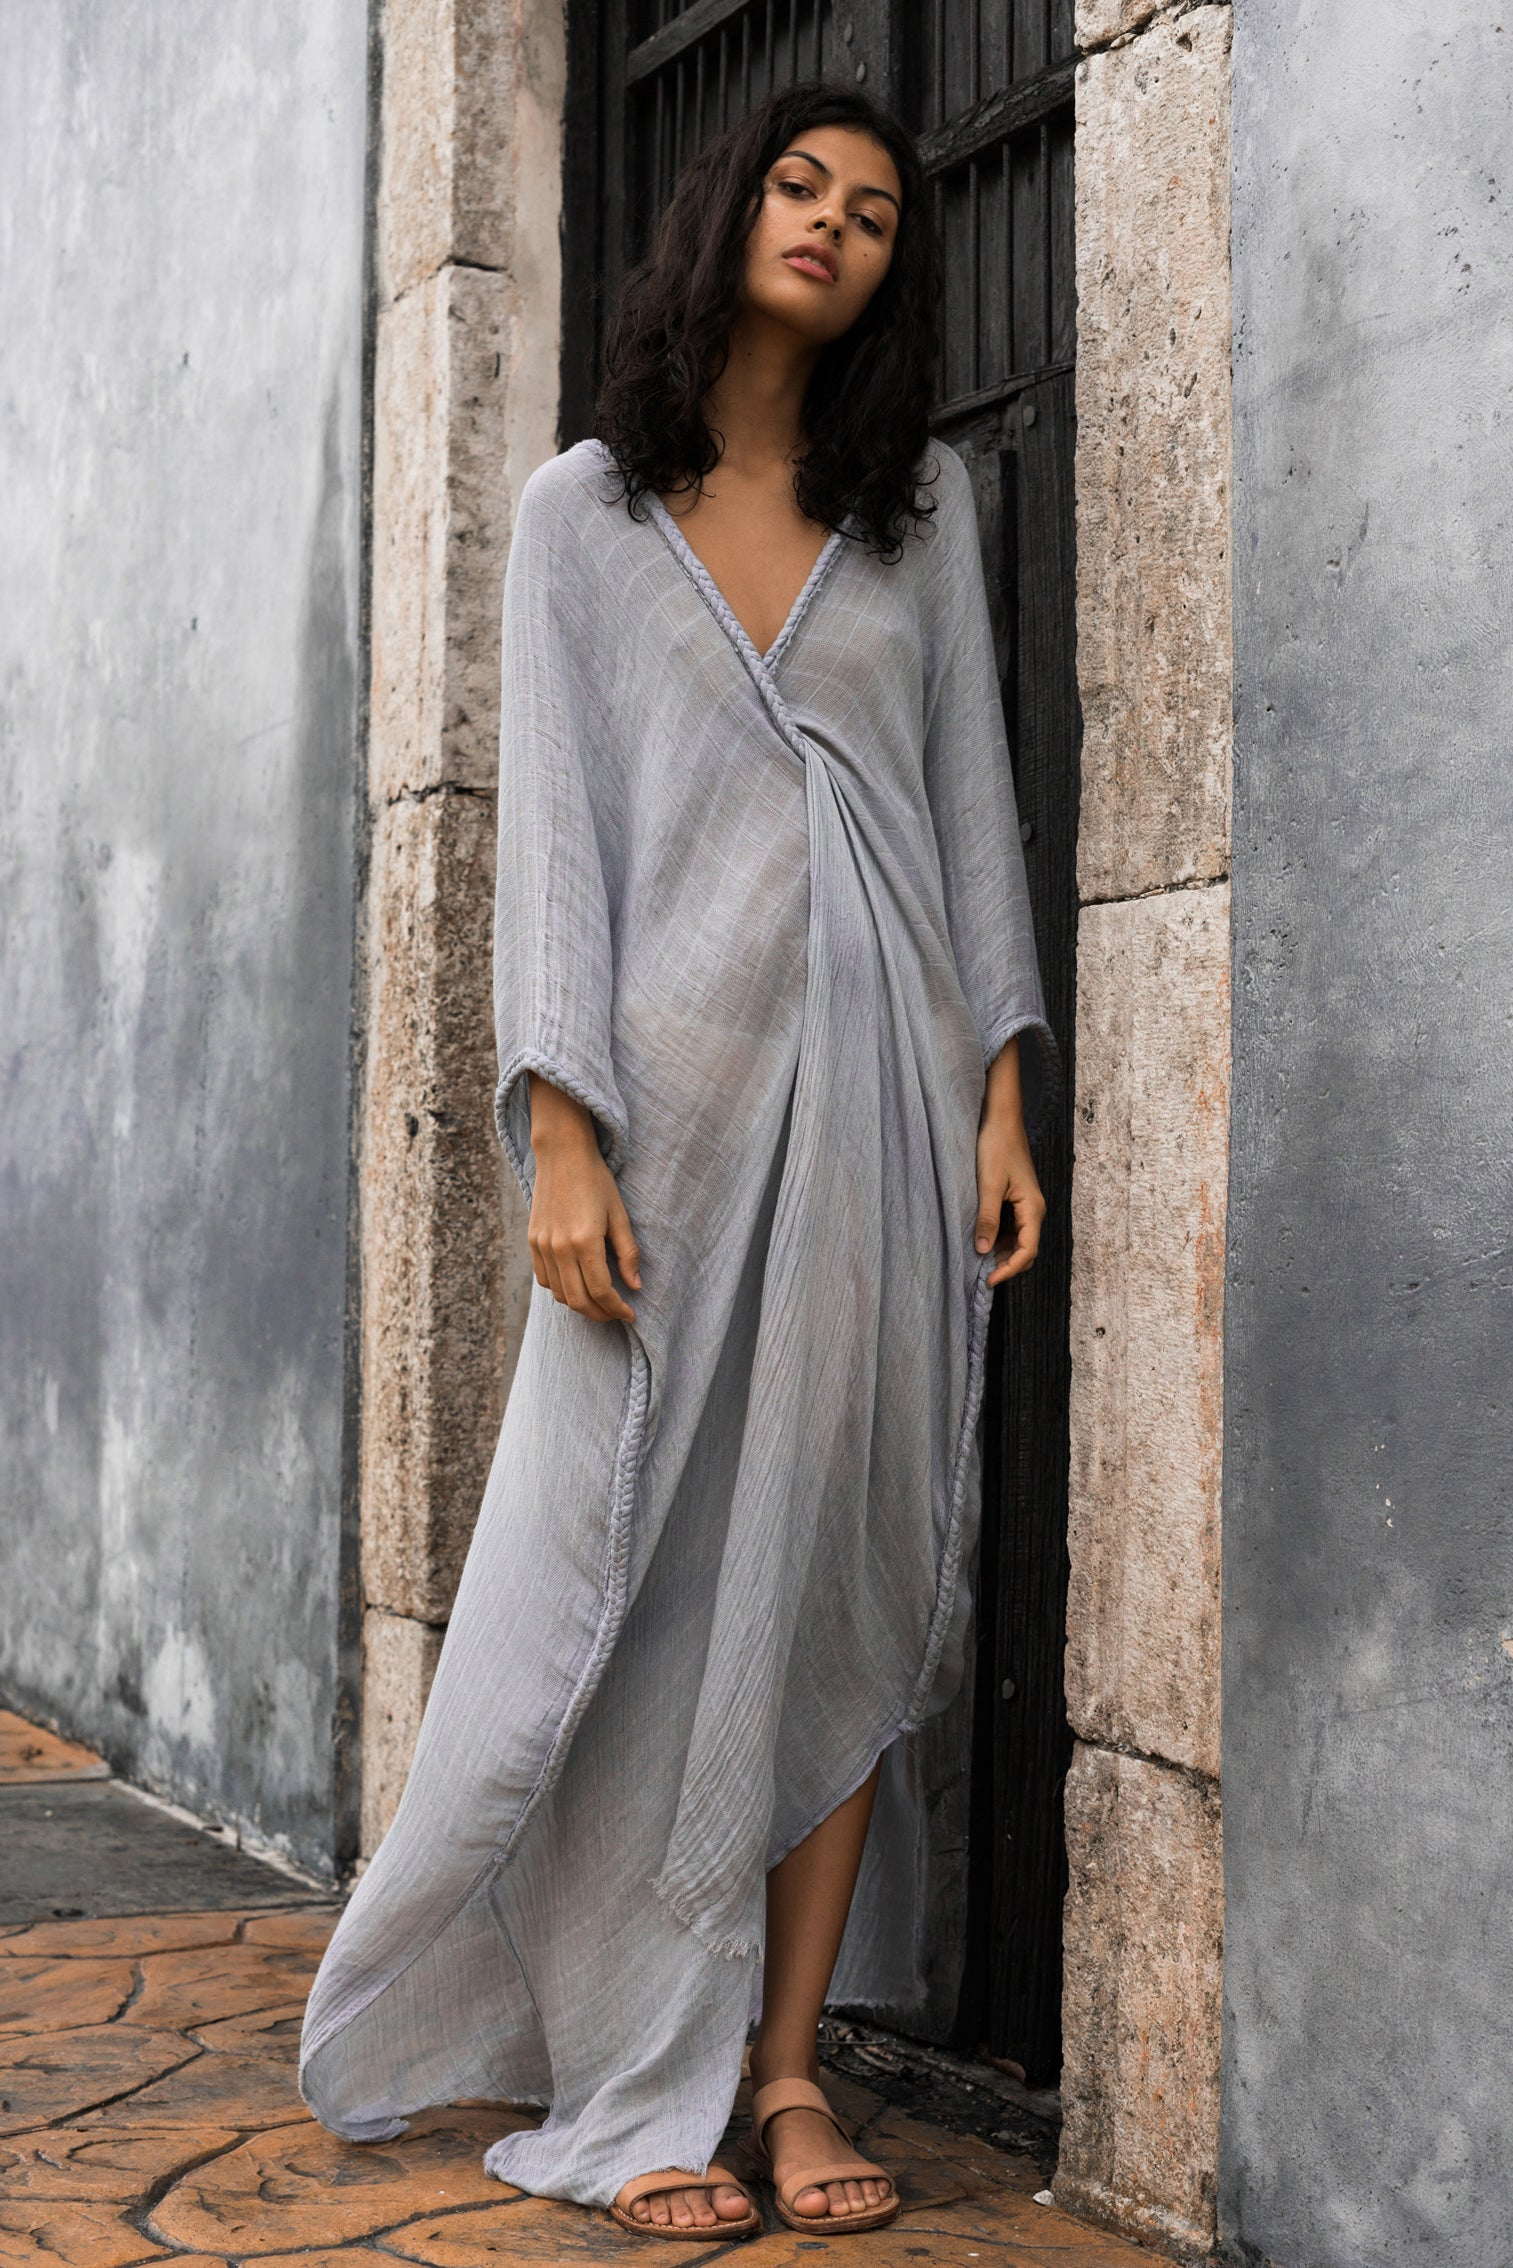 Kasia Kulenty Dress Kaftan, image